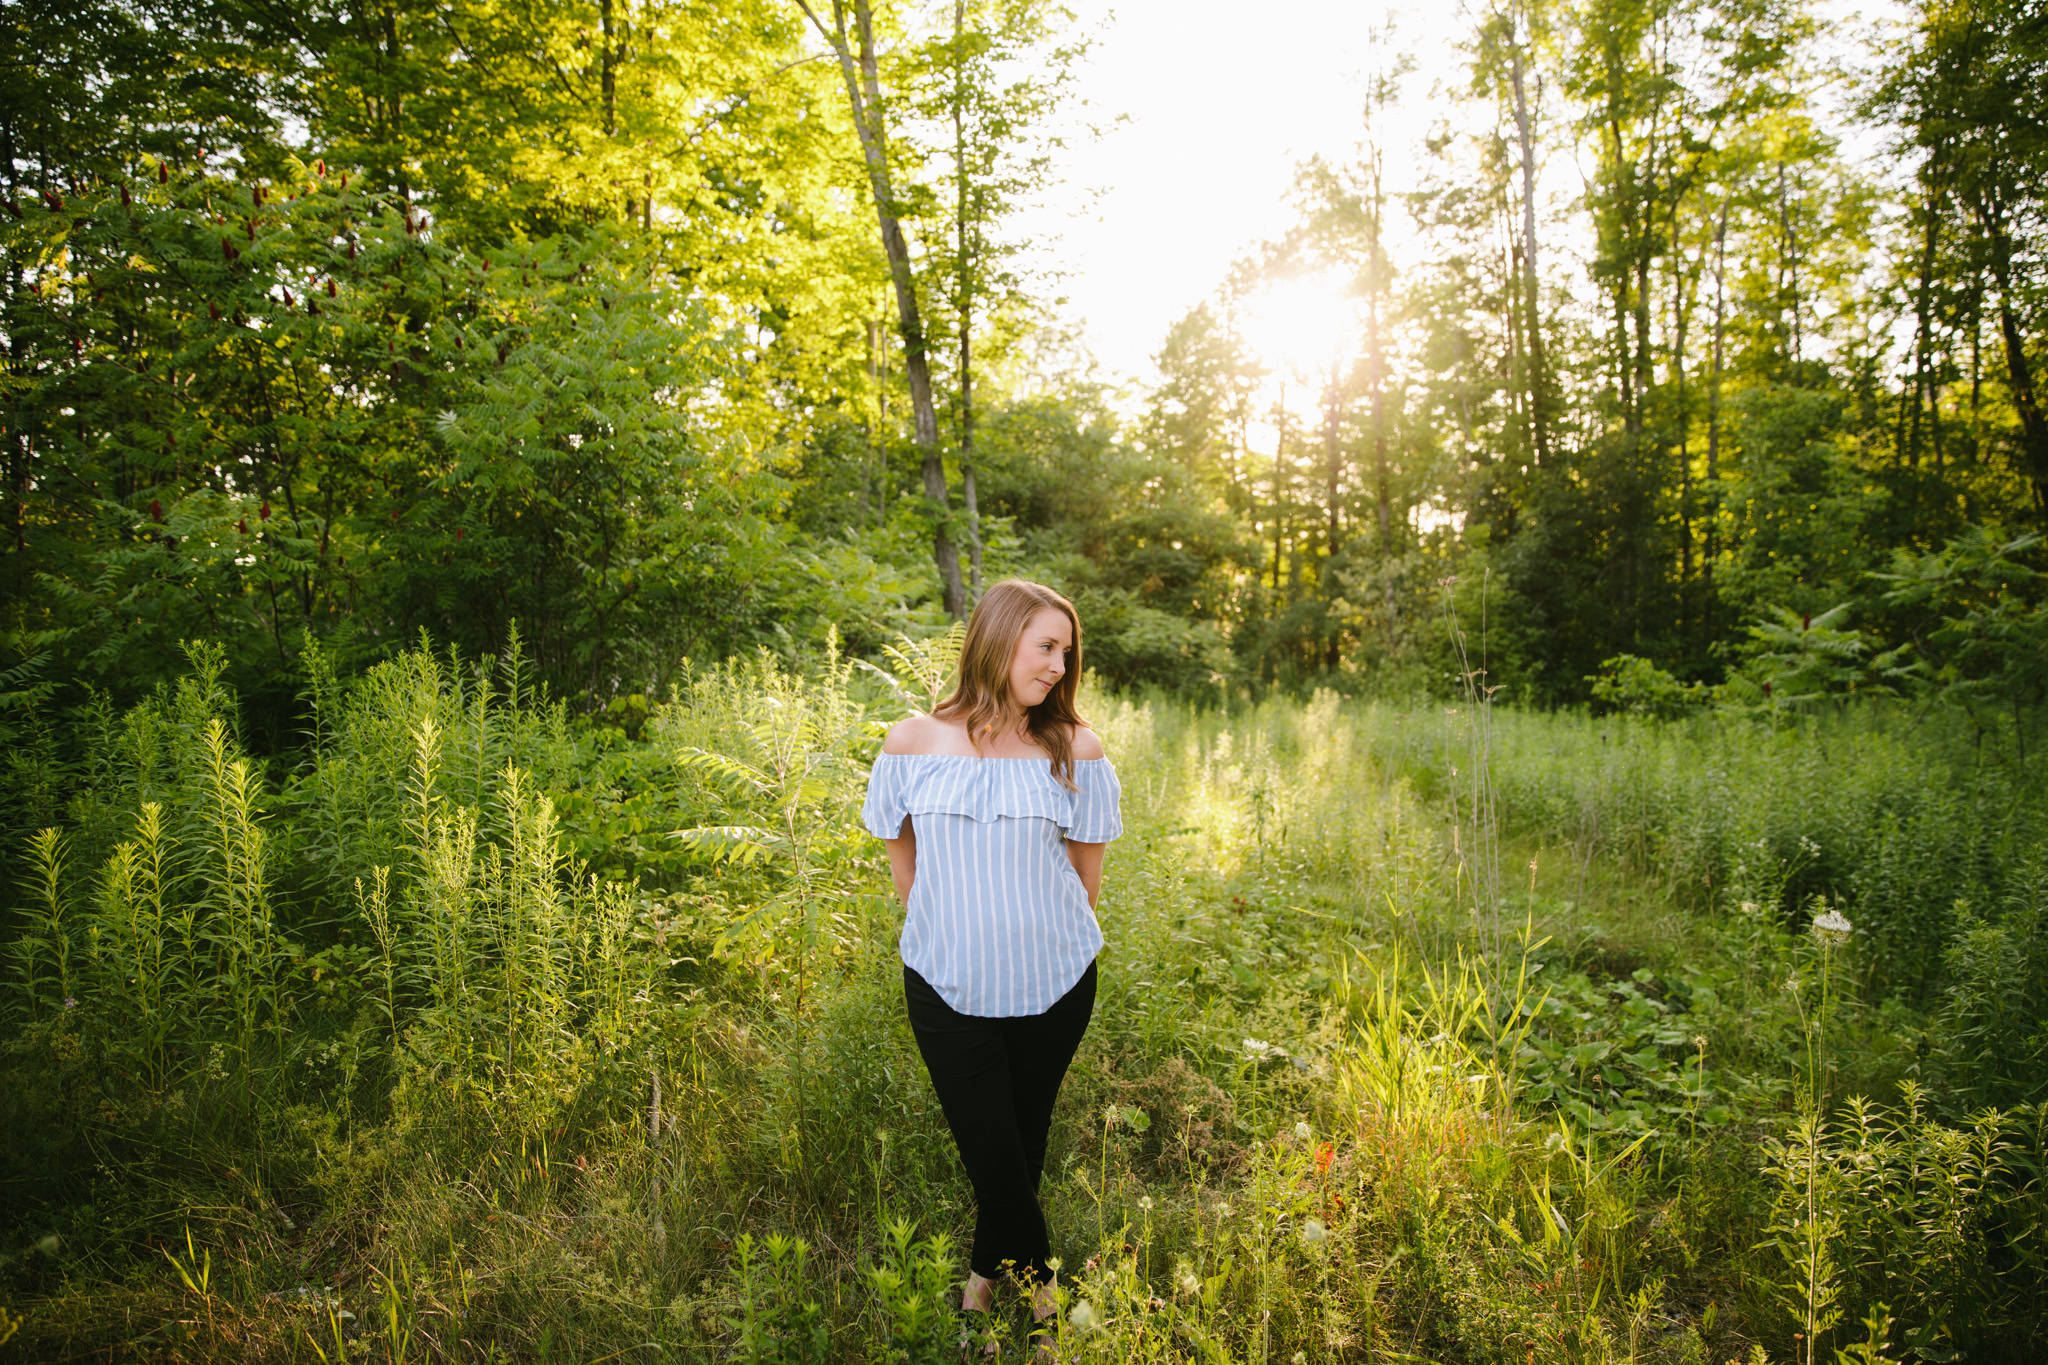 girl looking to the side while standing in a field